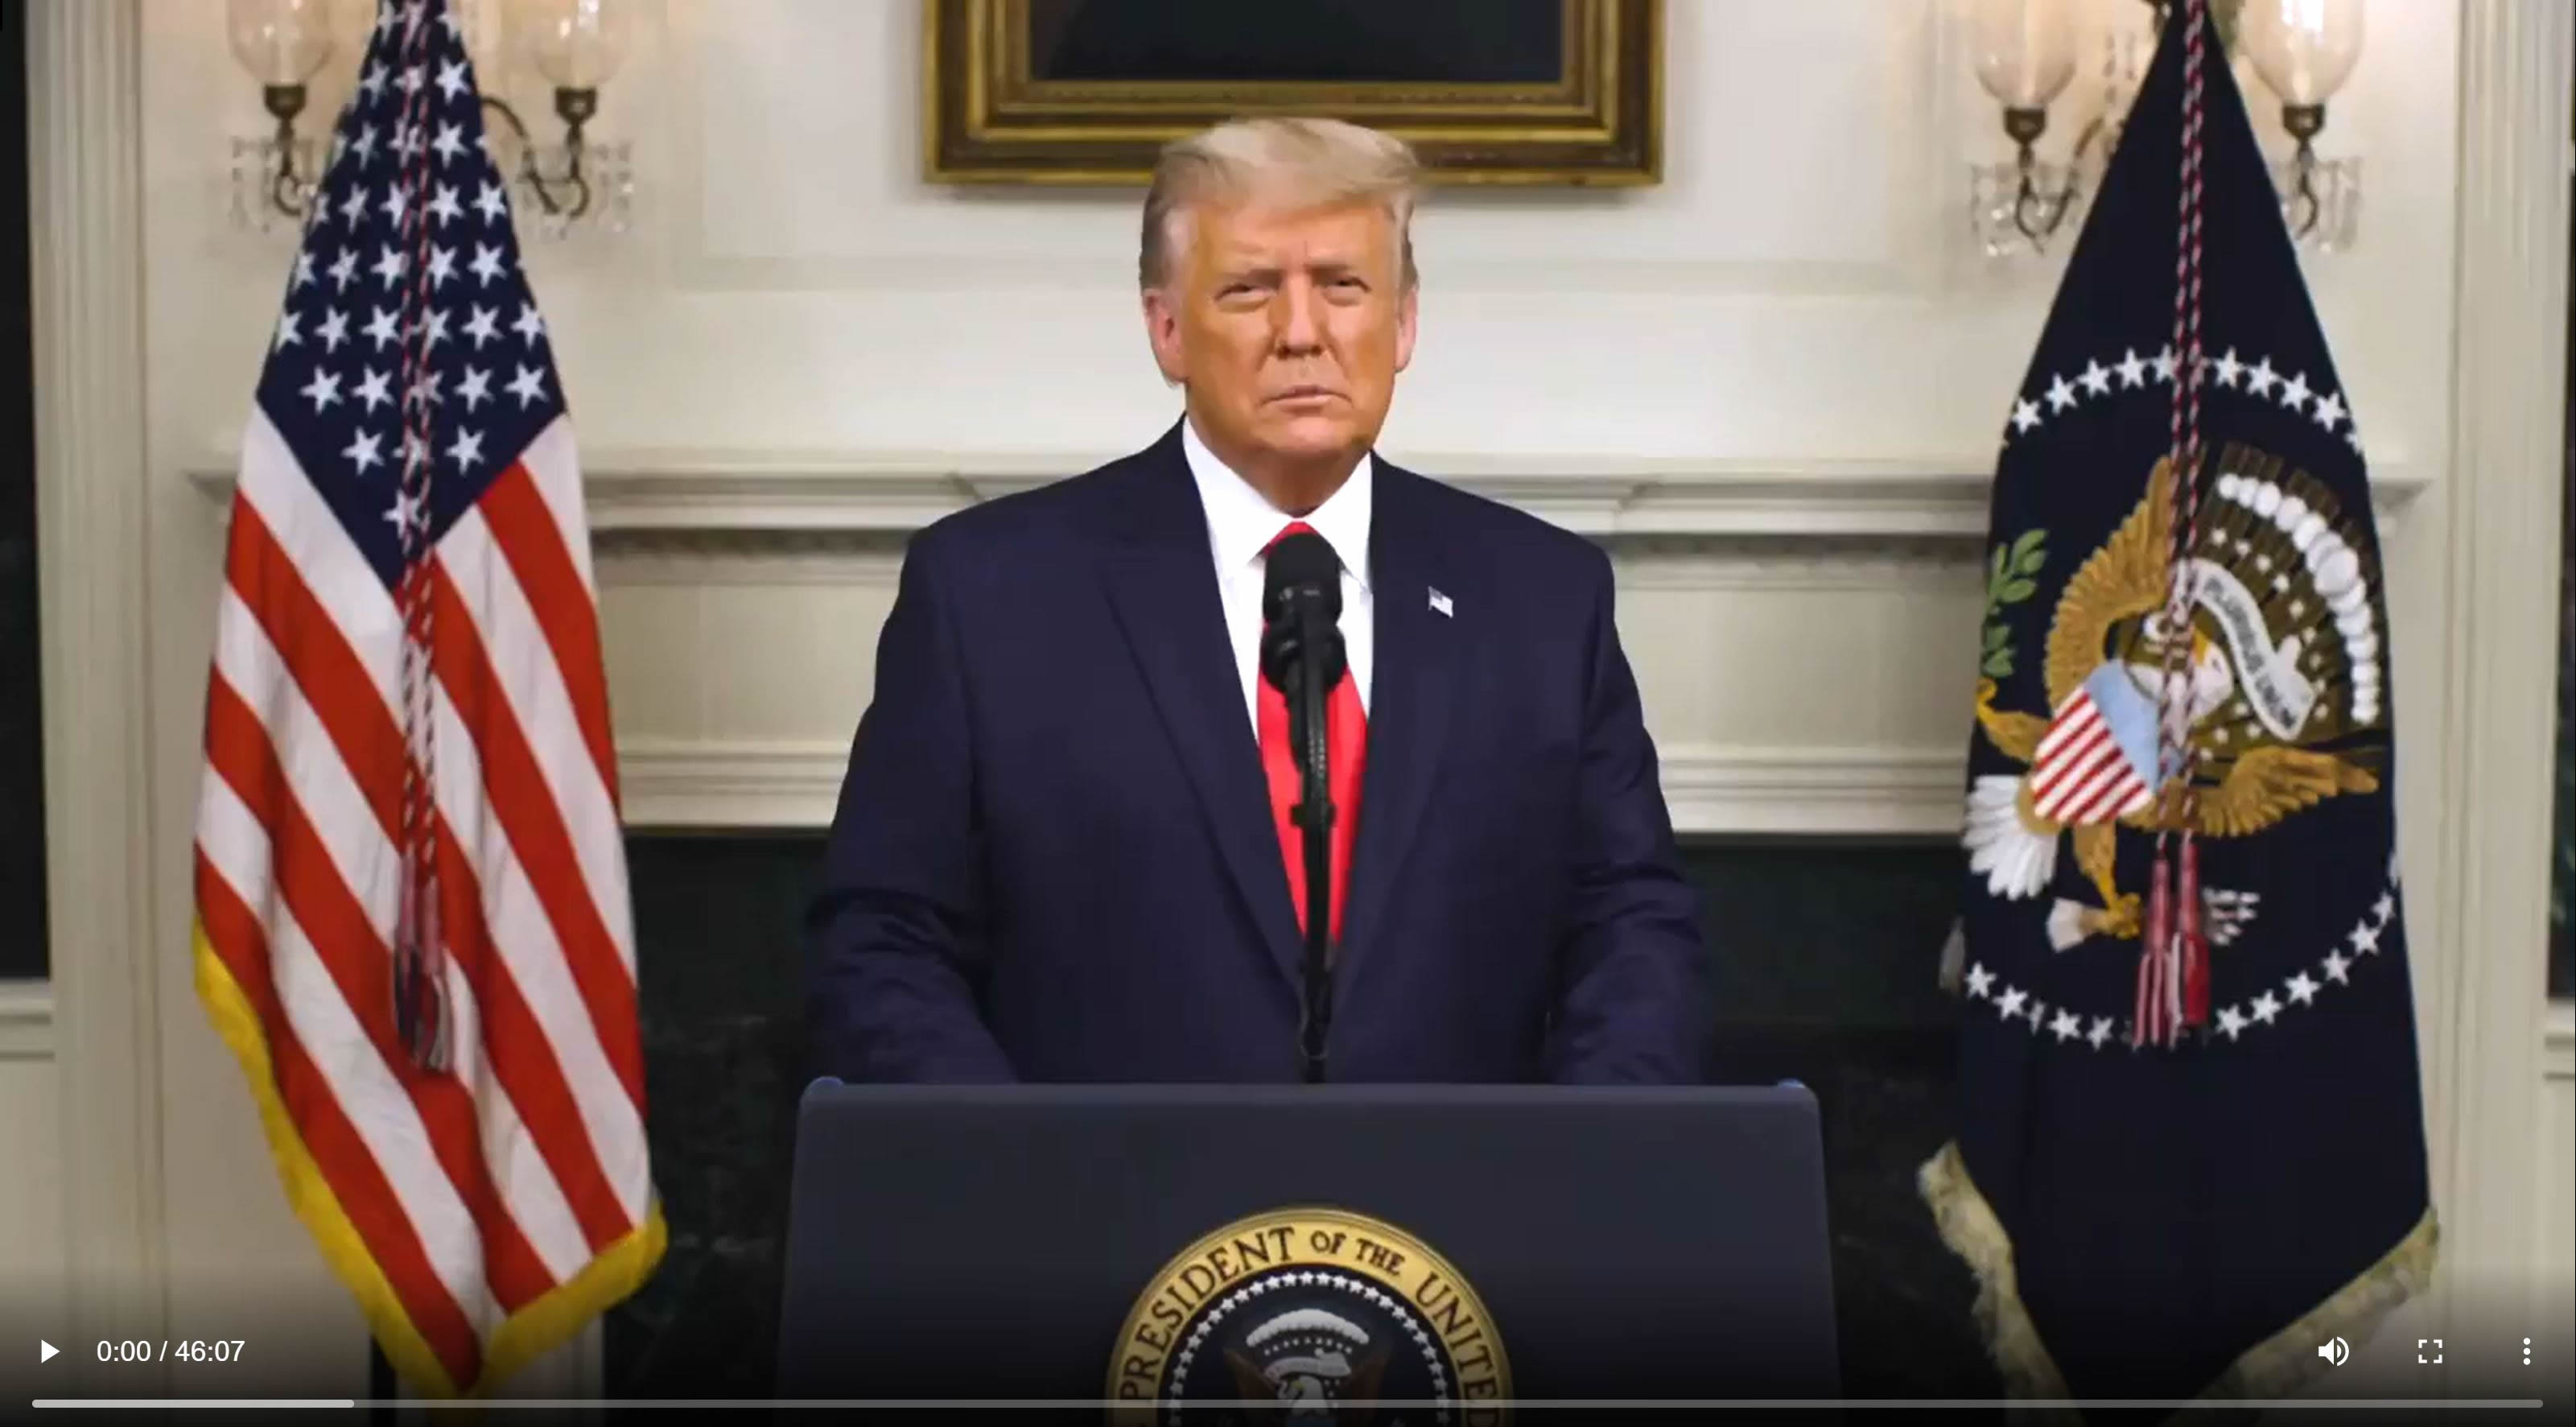 President Donald Trump. (Dec. 03, 2020). Speech on the unprecedented 2020 Election Fraud, uncensored, un-editorialized. White House.